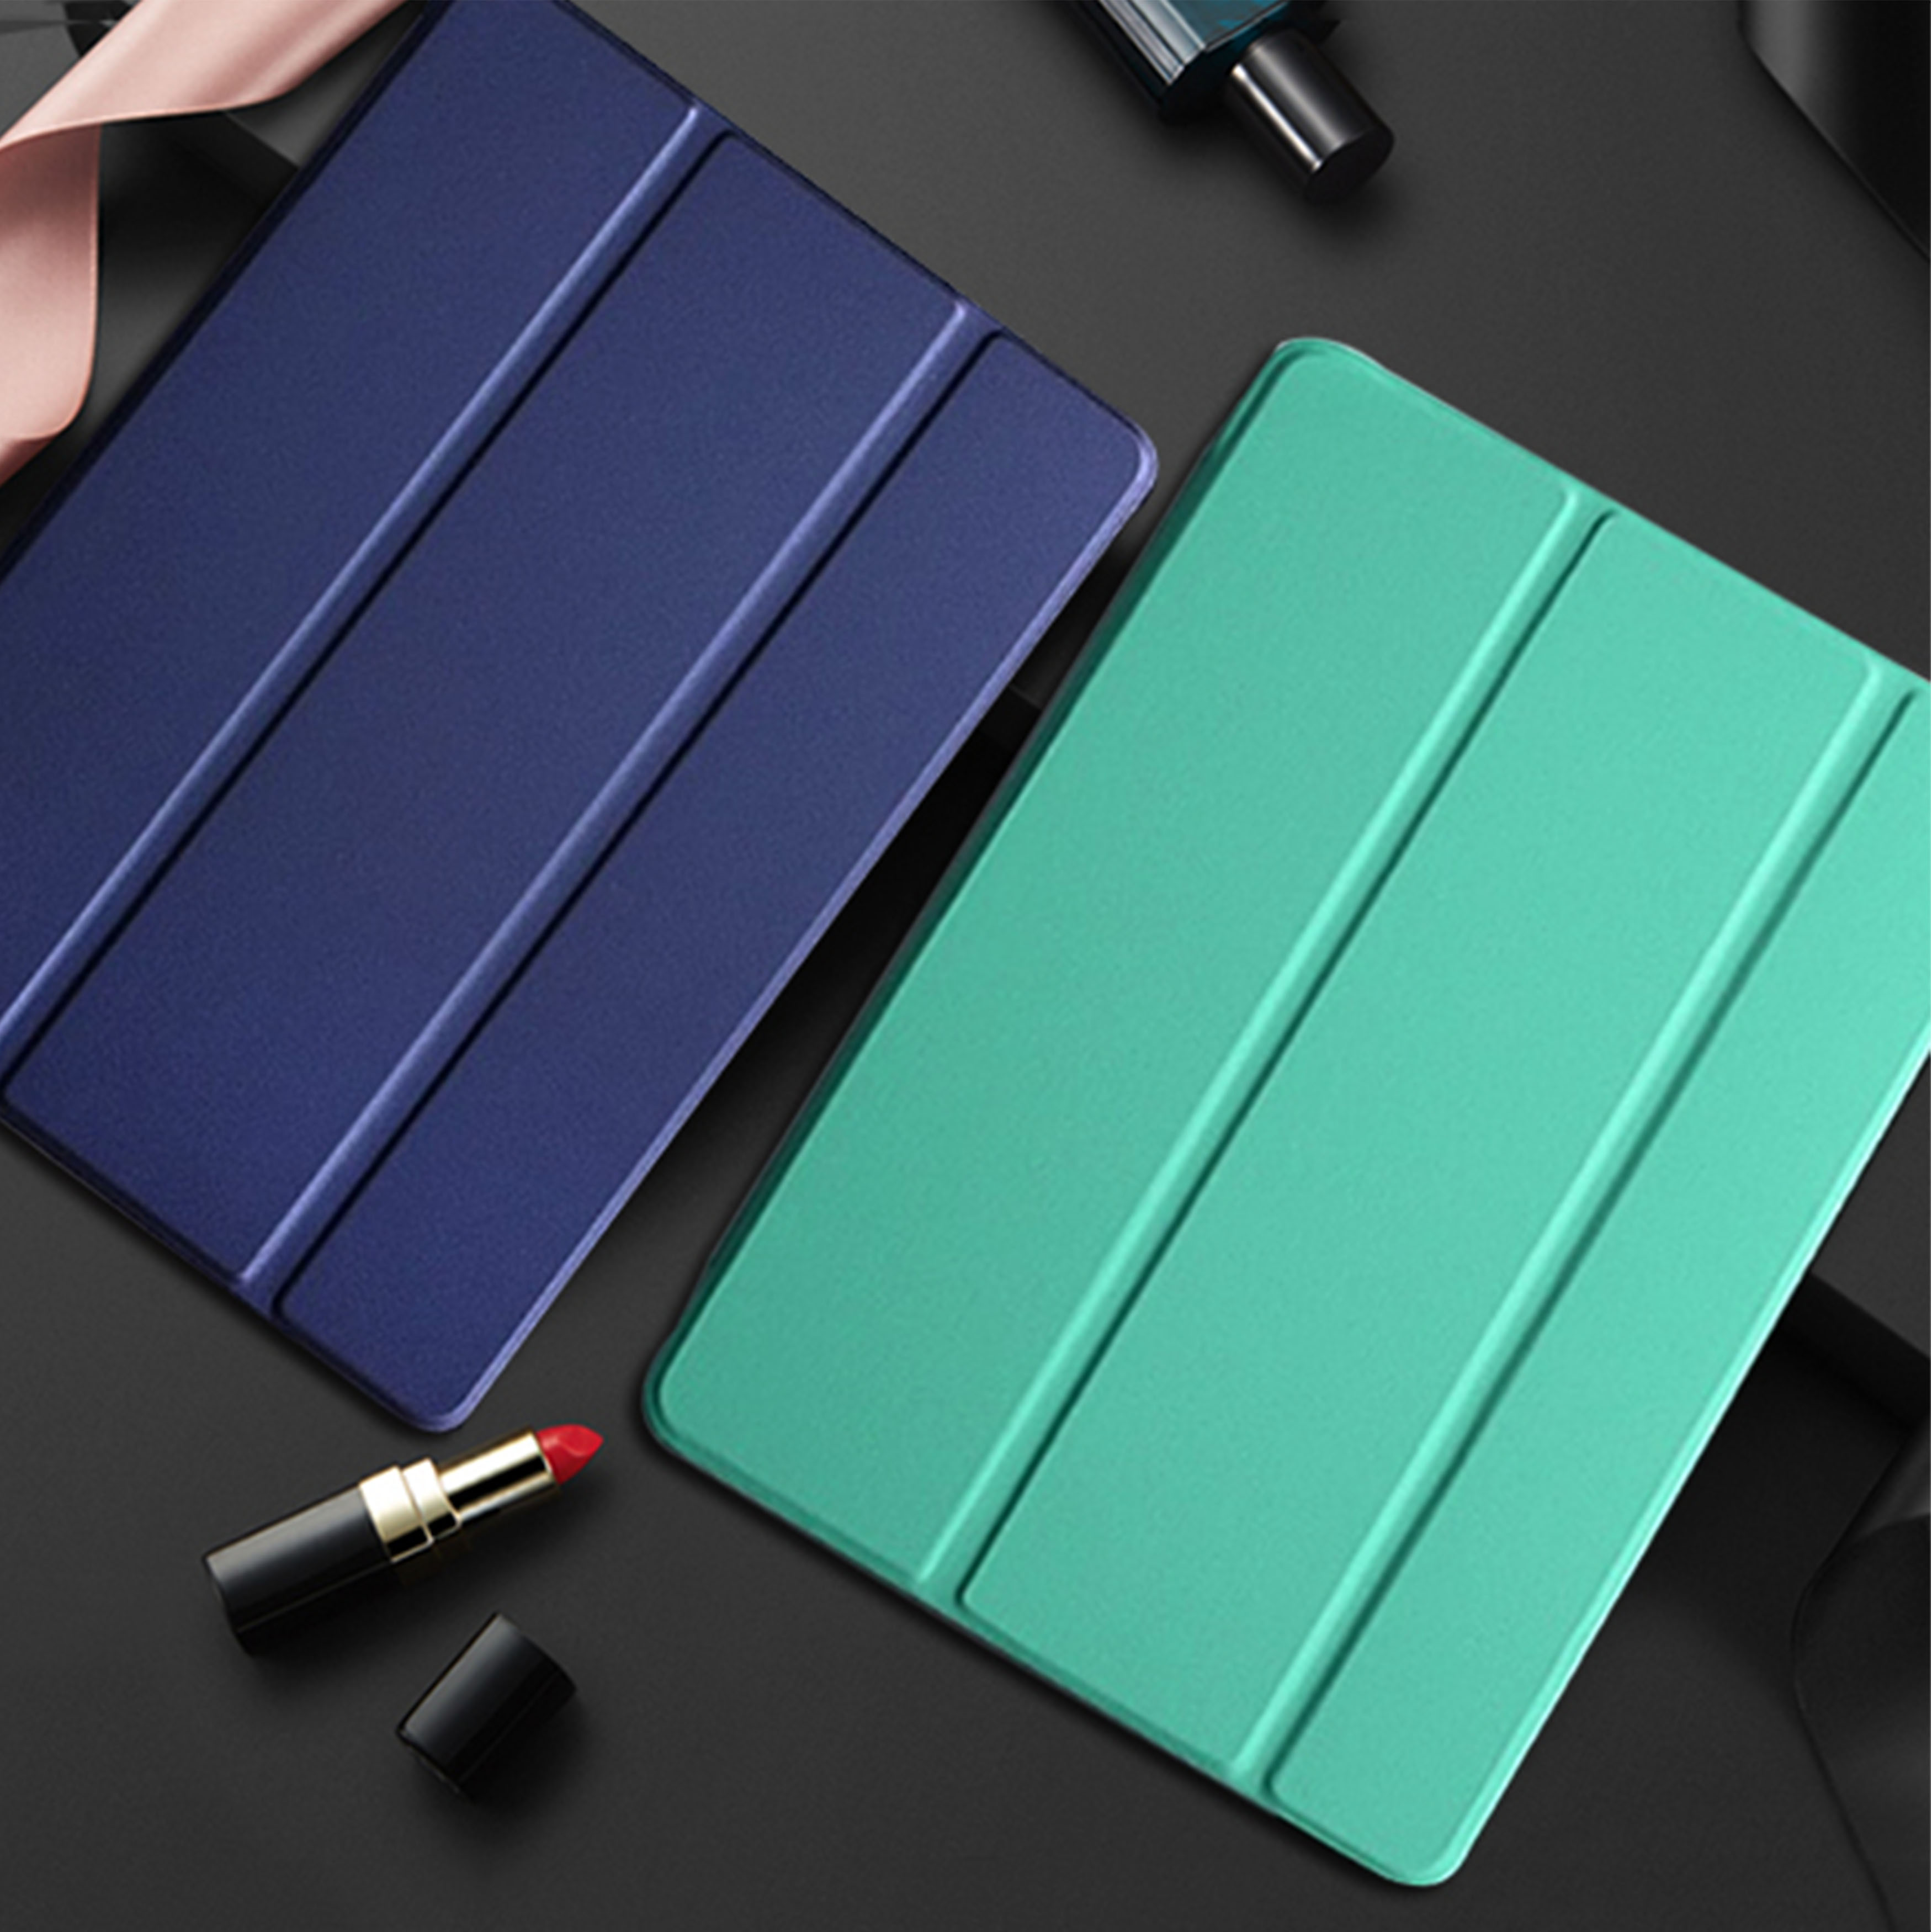 Case For Samsung Tab A 10.1 2019 T510 Cover PU Leather Smart Protect Shell For Samsung Galaxy Tab A 10.1 SM-T510 SM-T515 Coque